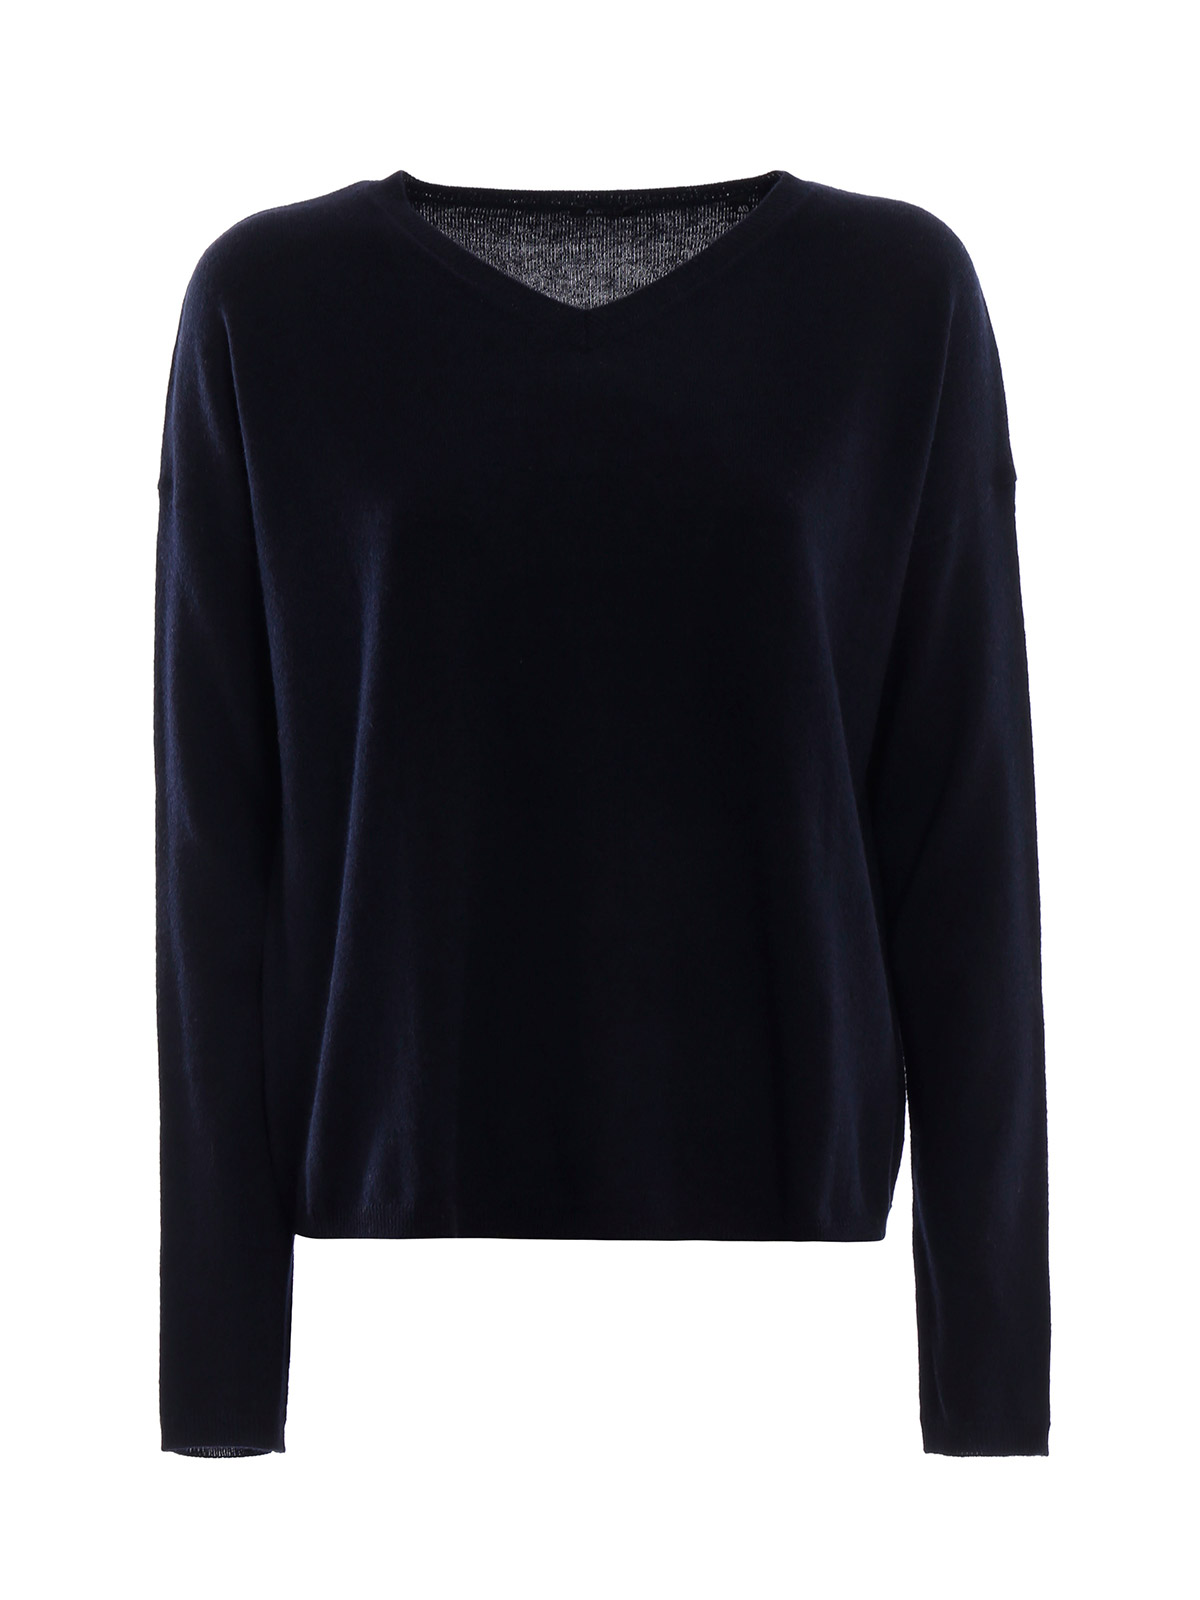 Picture of ASPESI | Women's Wool Sweater